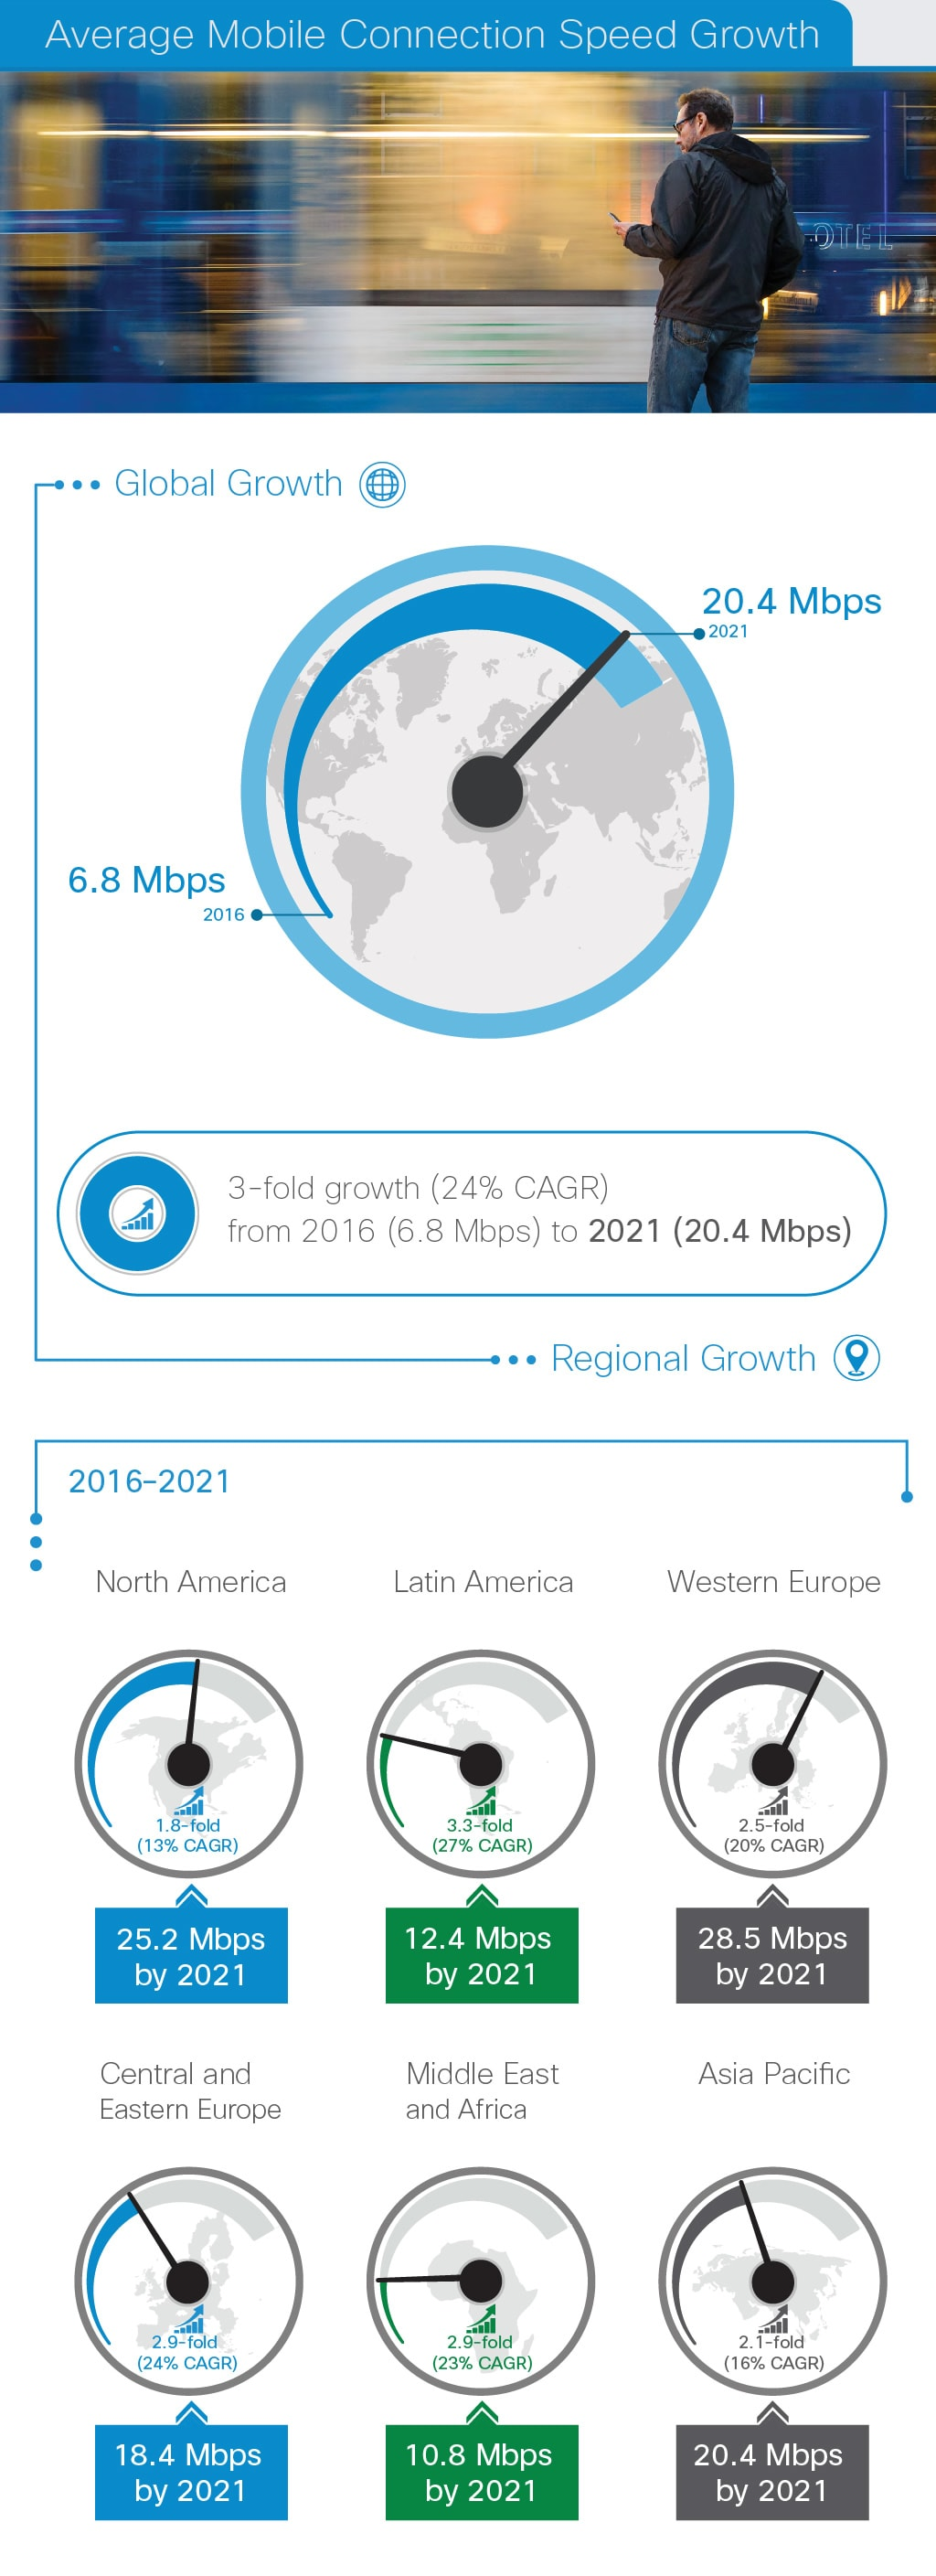 Average Mobile Connection Speed Growth